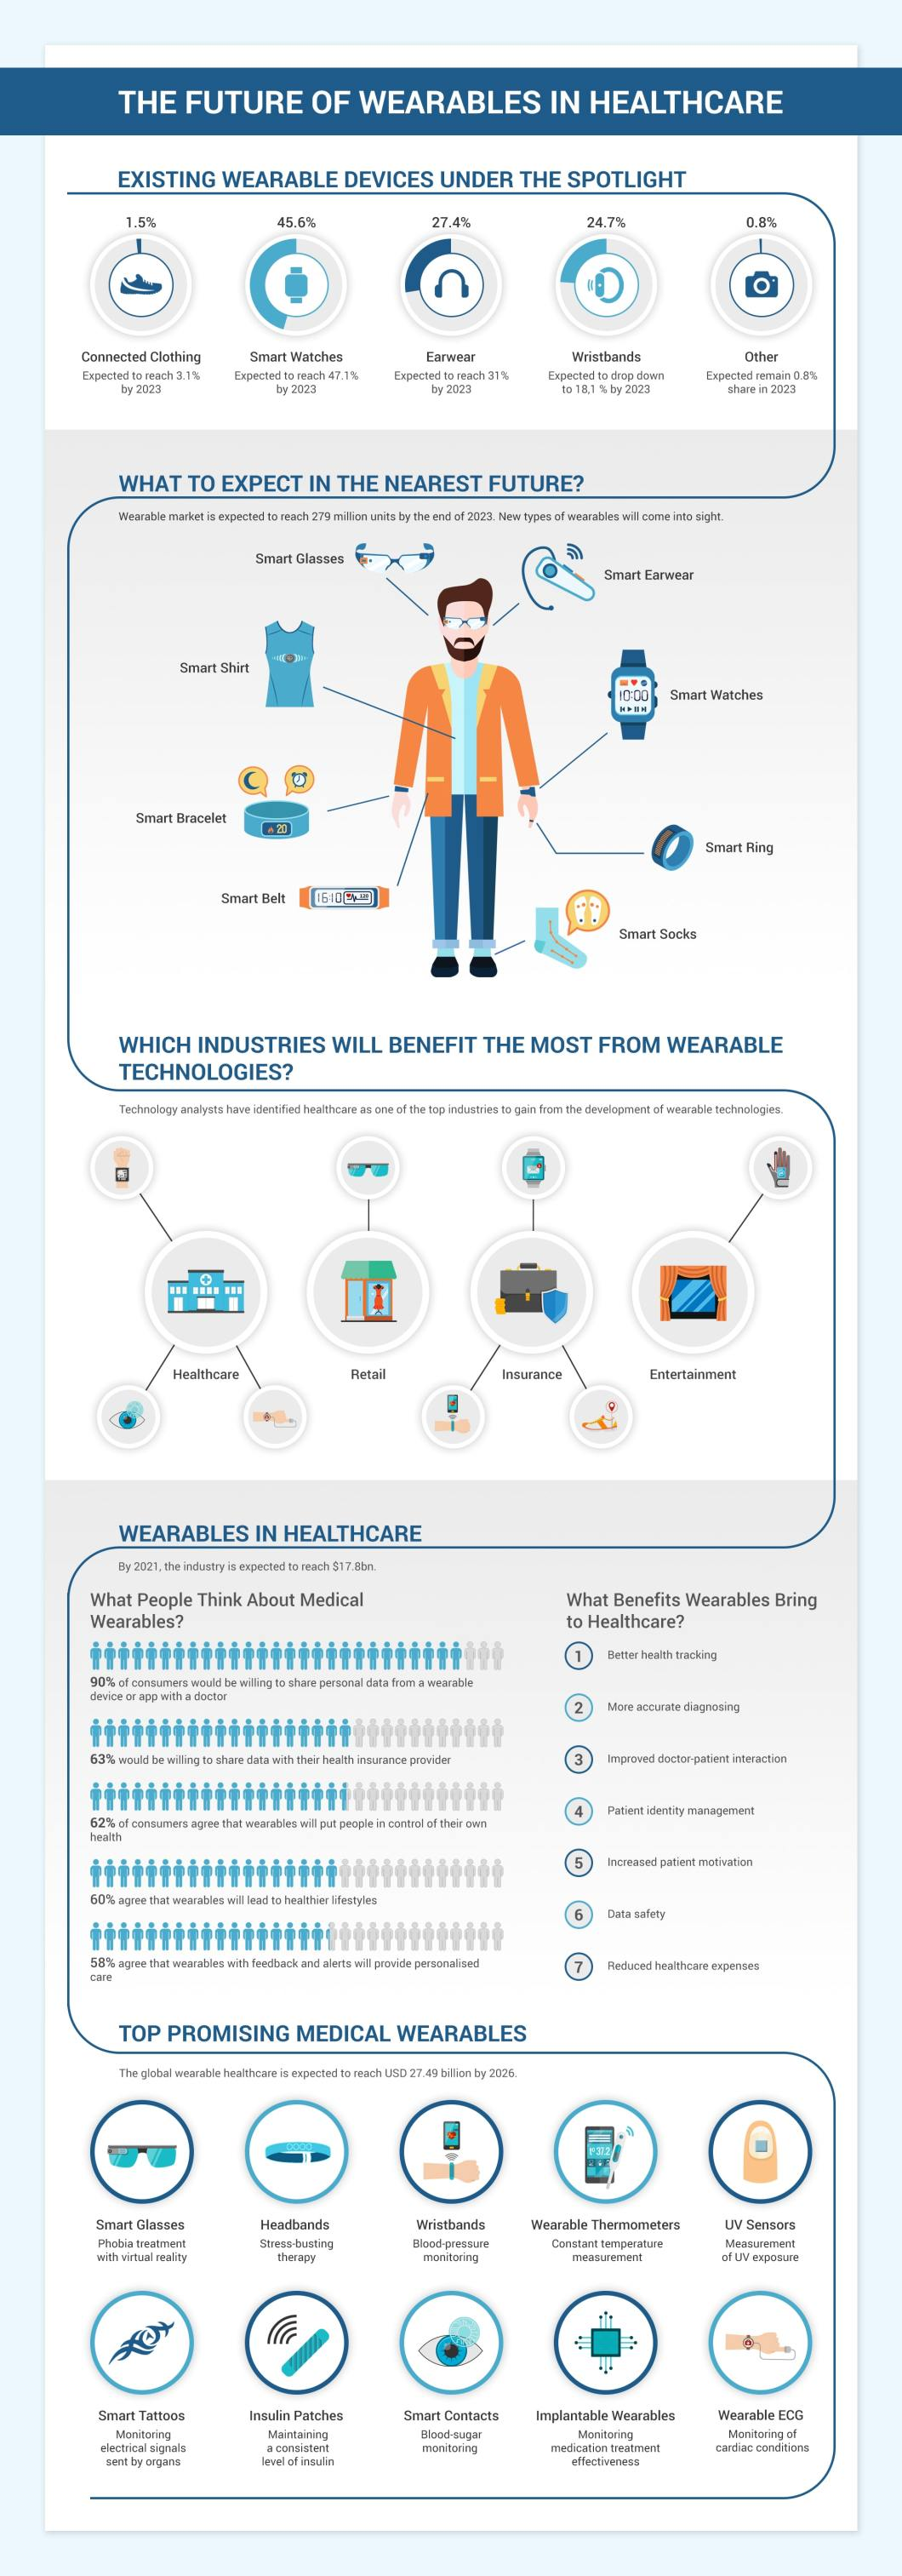 Wearable Technology and How It Will Positively Impact Health - Infographic